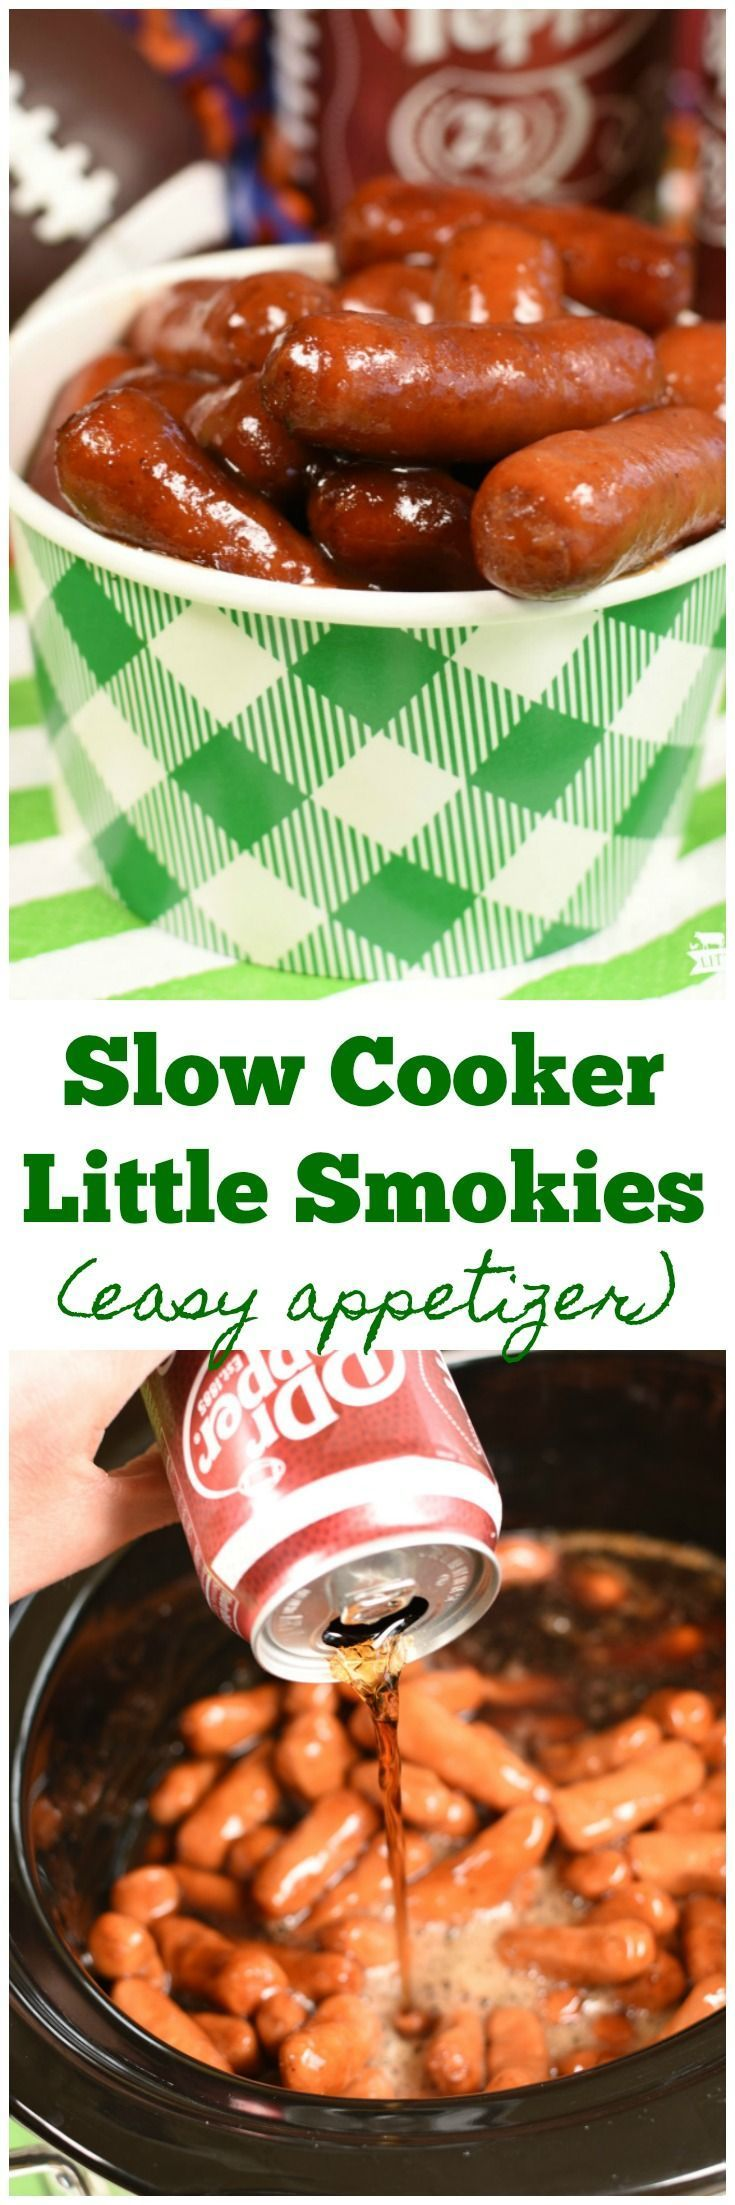 Slow Cooker Little Smokies are the best appetizer! Super easy too! Parties. Finger Food. Appetizers! #AD #HomeGateChamp @drpepper @walmart